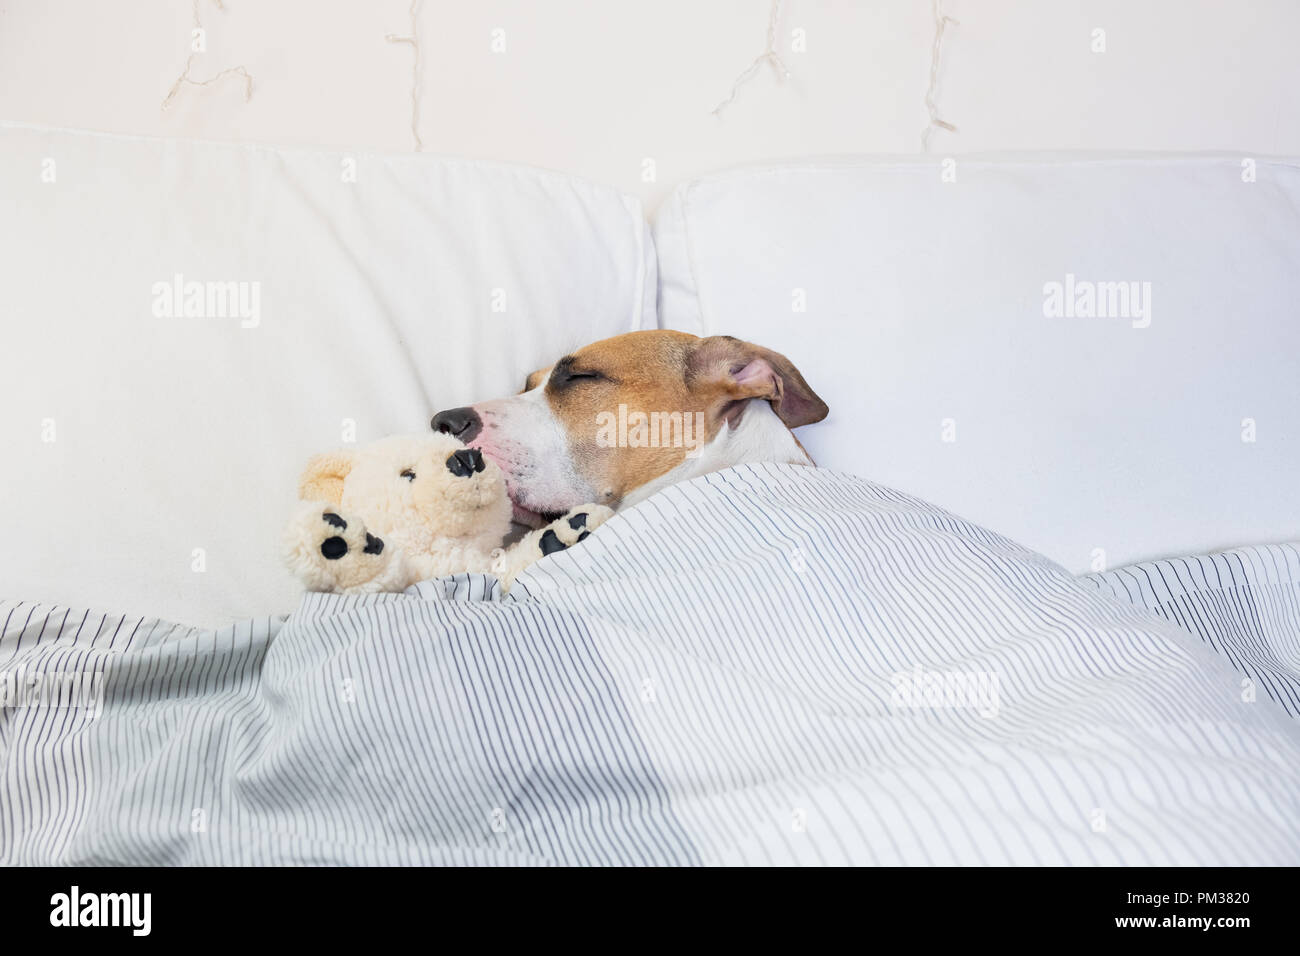 Cute dog sleeping in bed with a fluffy toy bear. Staffordshire terrier puppy resting in clean white bedroom at home - Stock Image